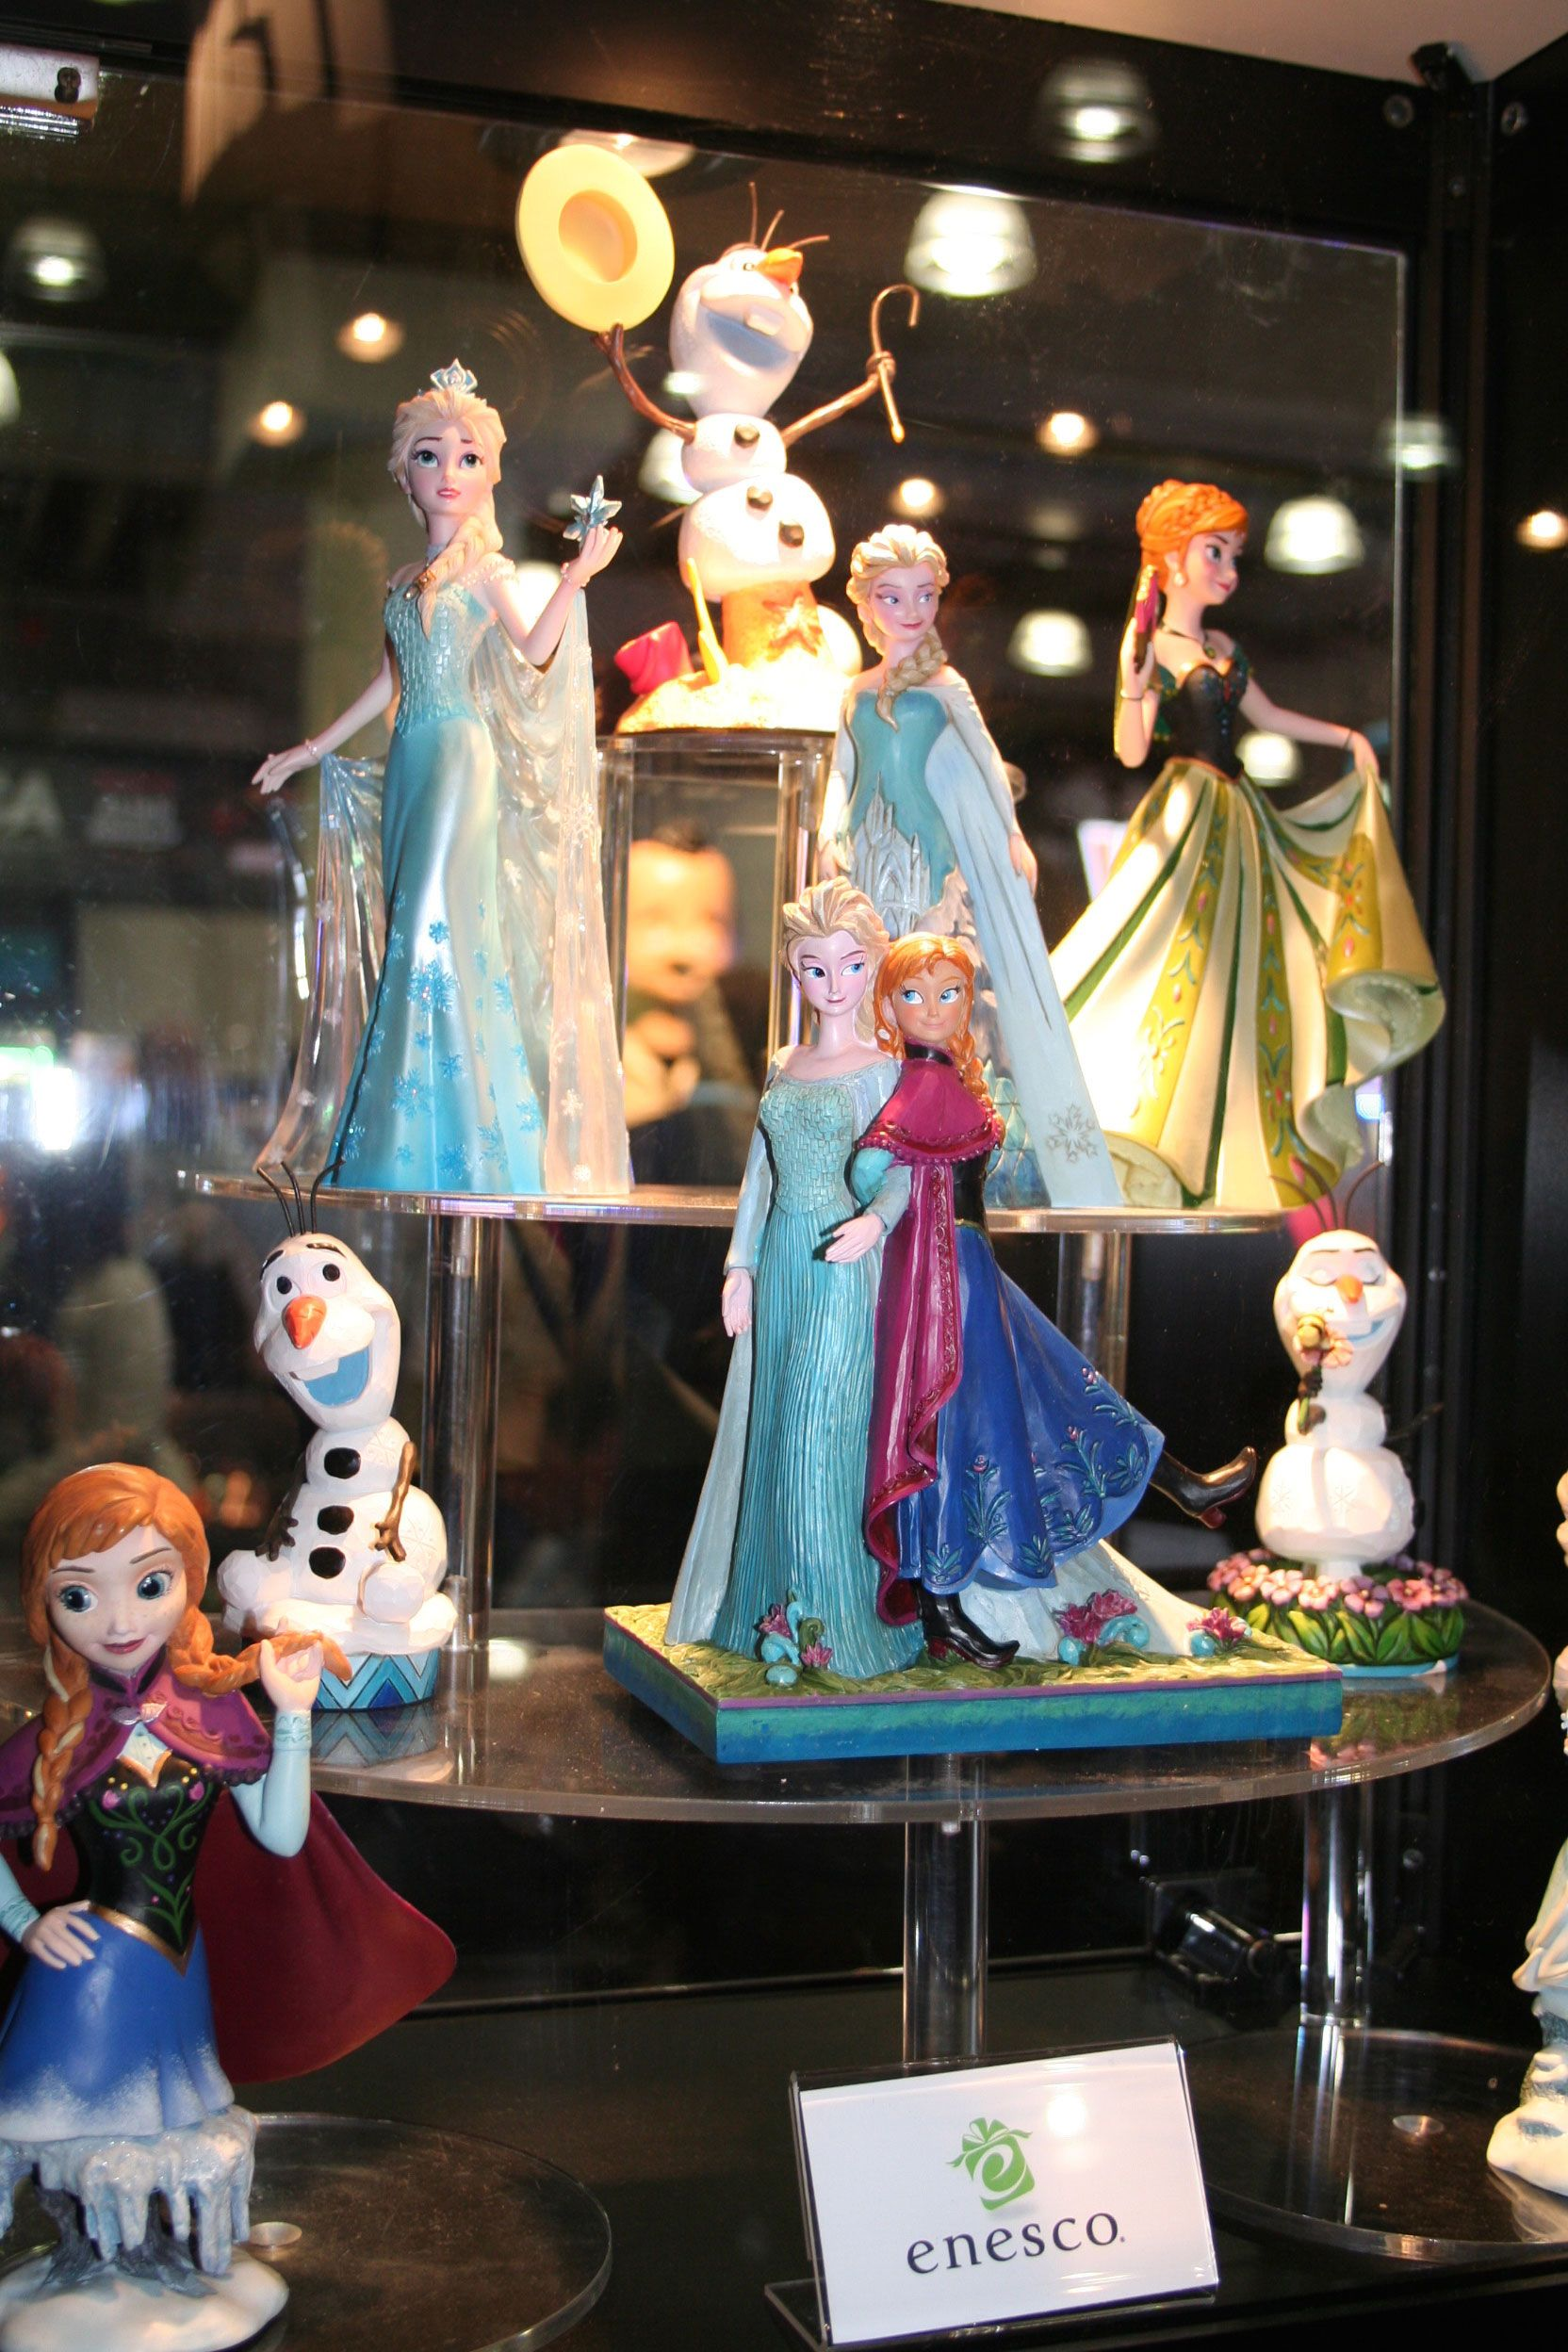 New Star Wars Game Of Thrones And Frozen Toys Unveiled At